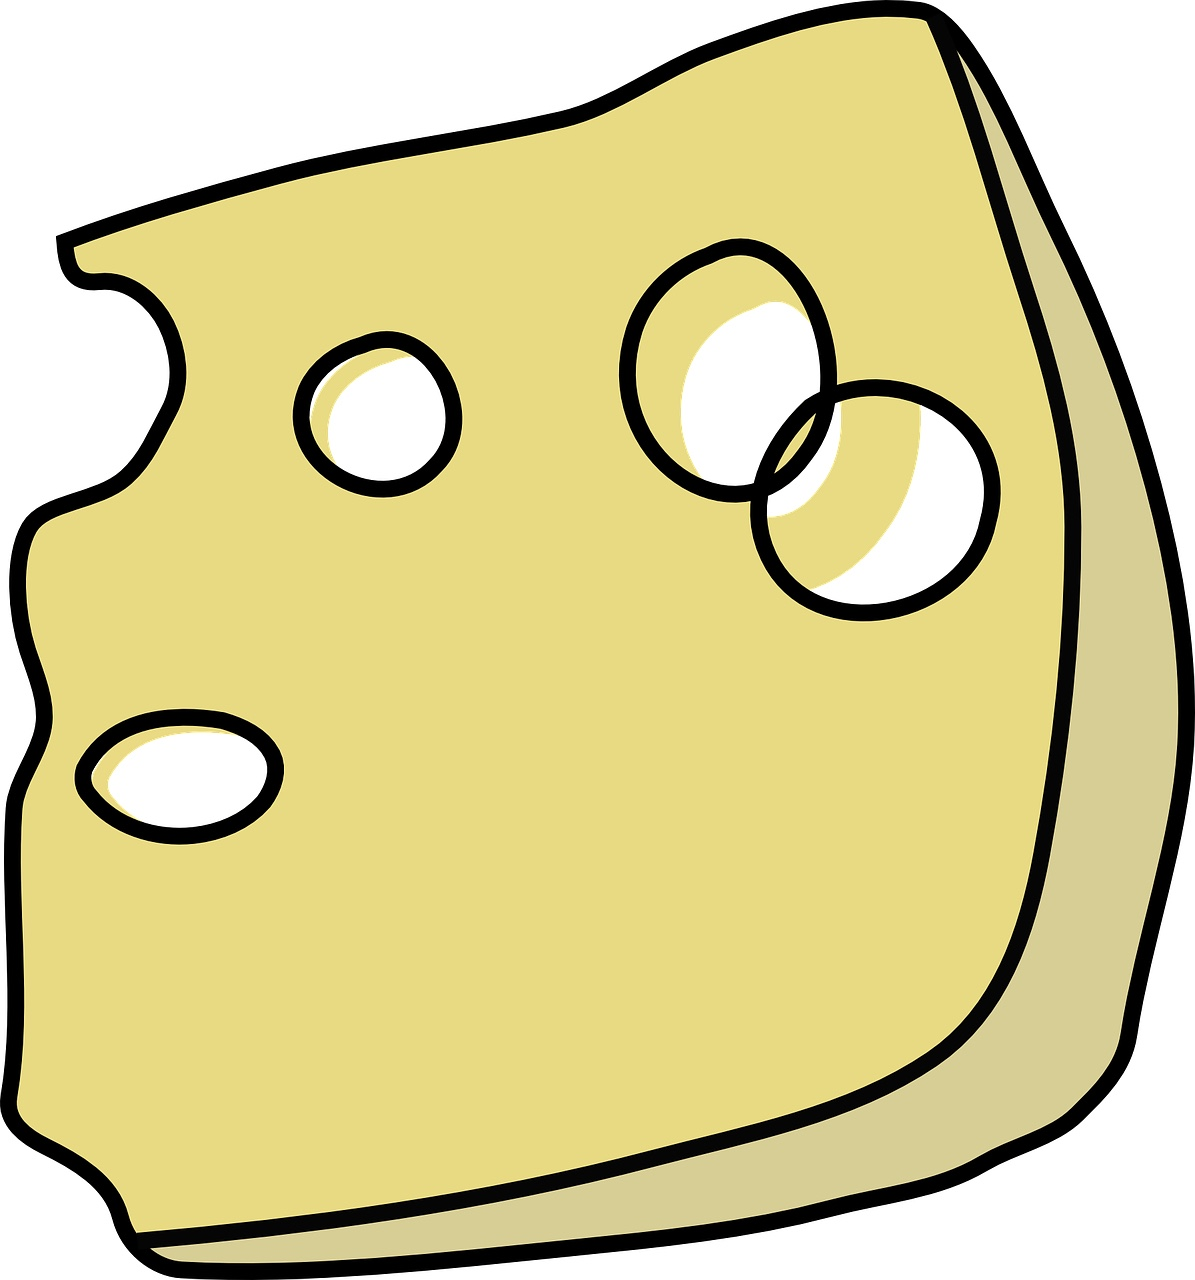 Image of a drawing of a wedge of Swiss cheese.